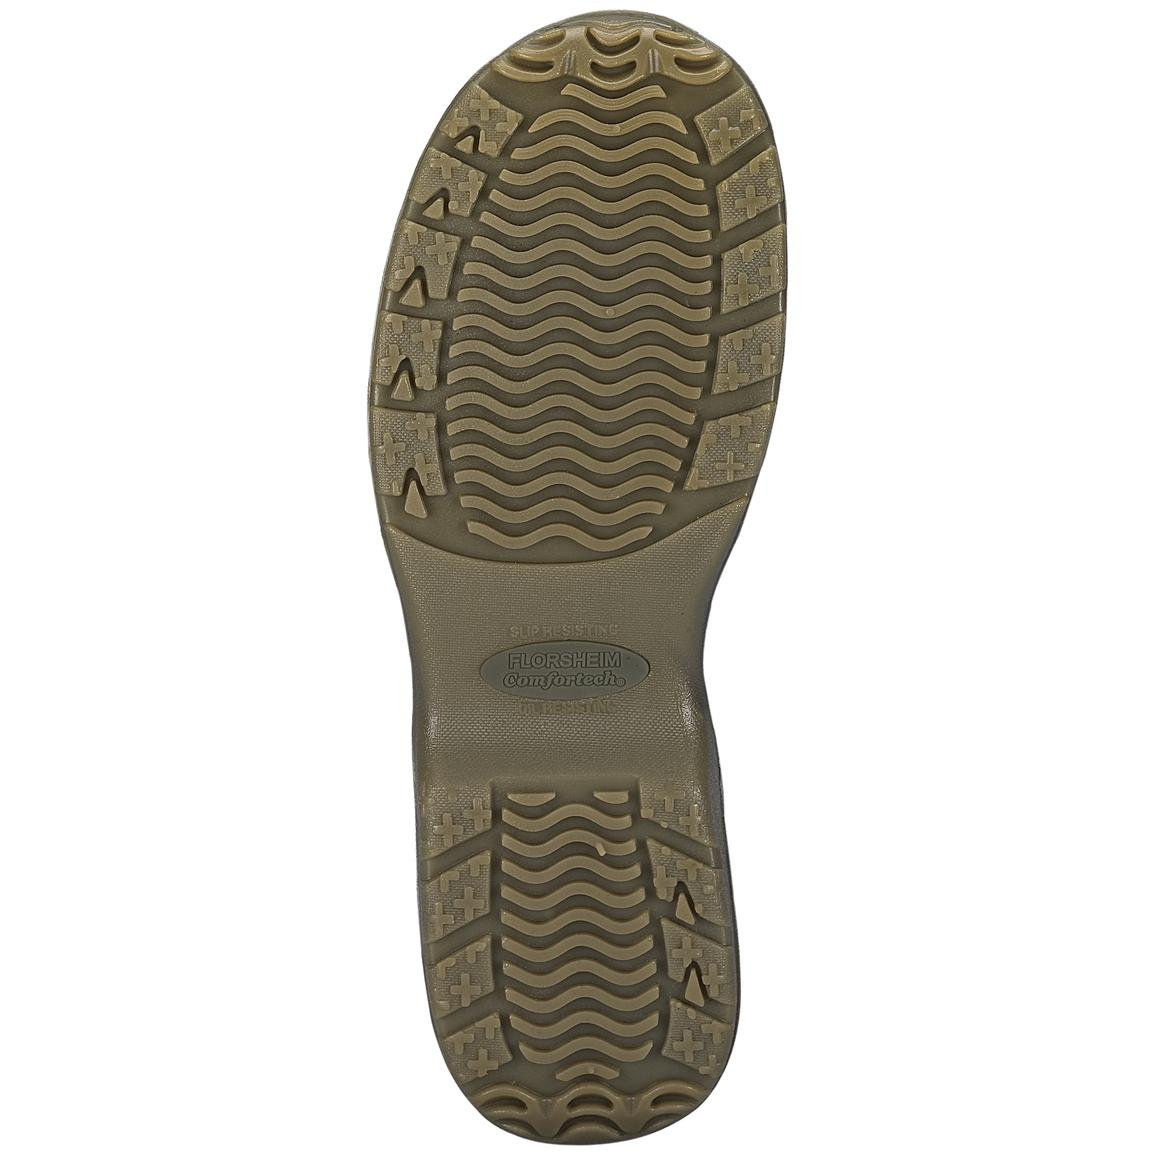 Brown - Polyurethane outsoles provide the best slip protection available